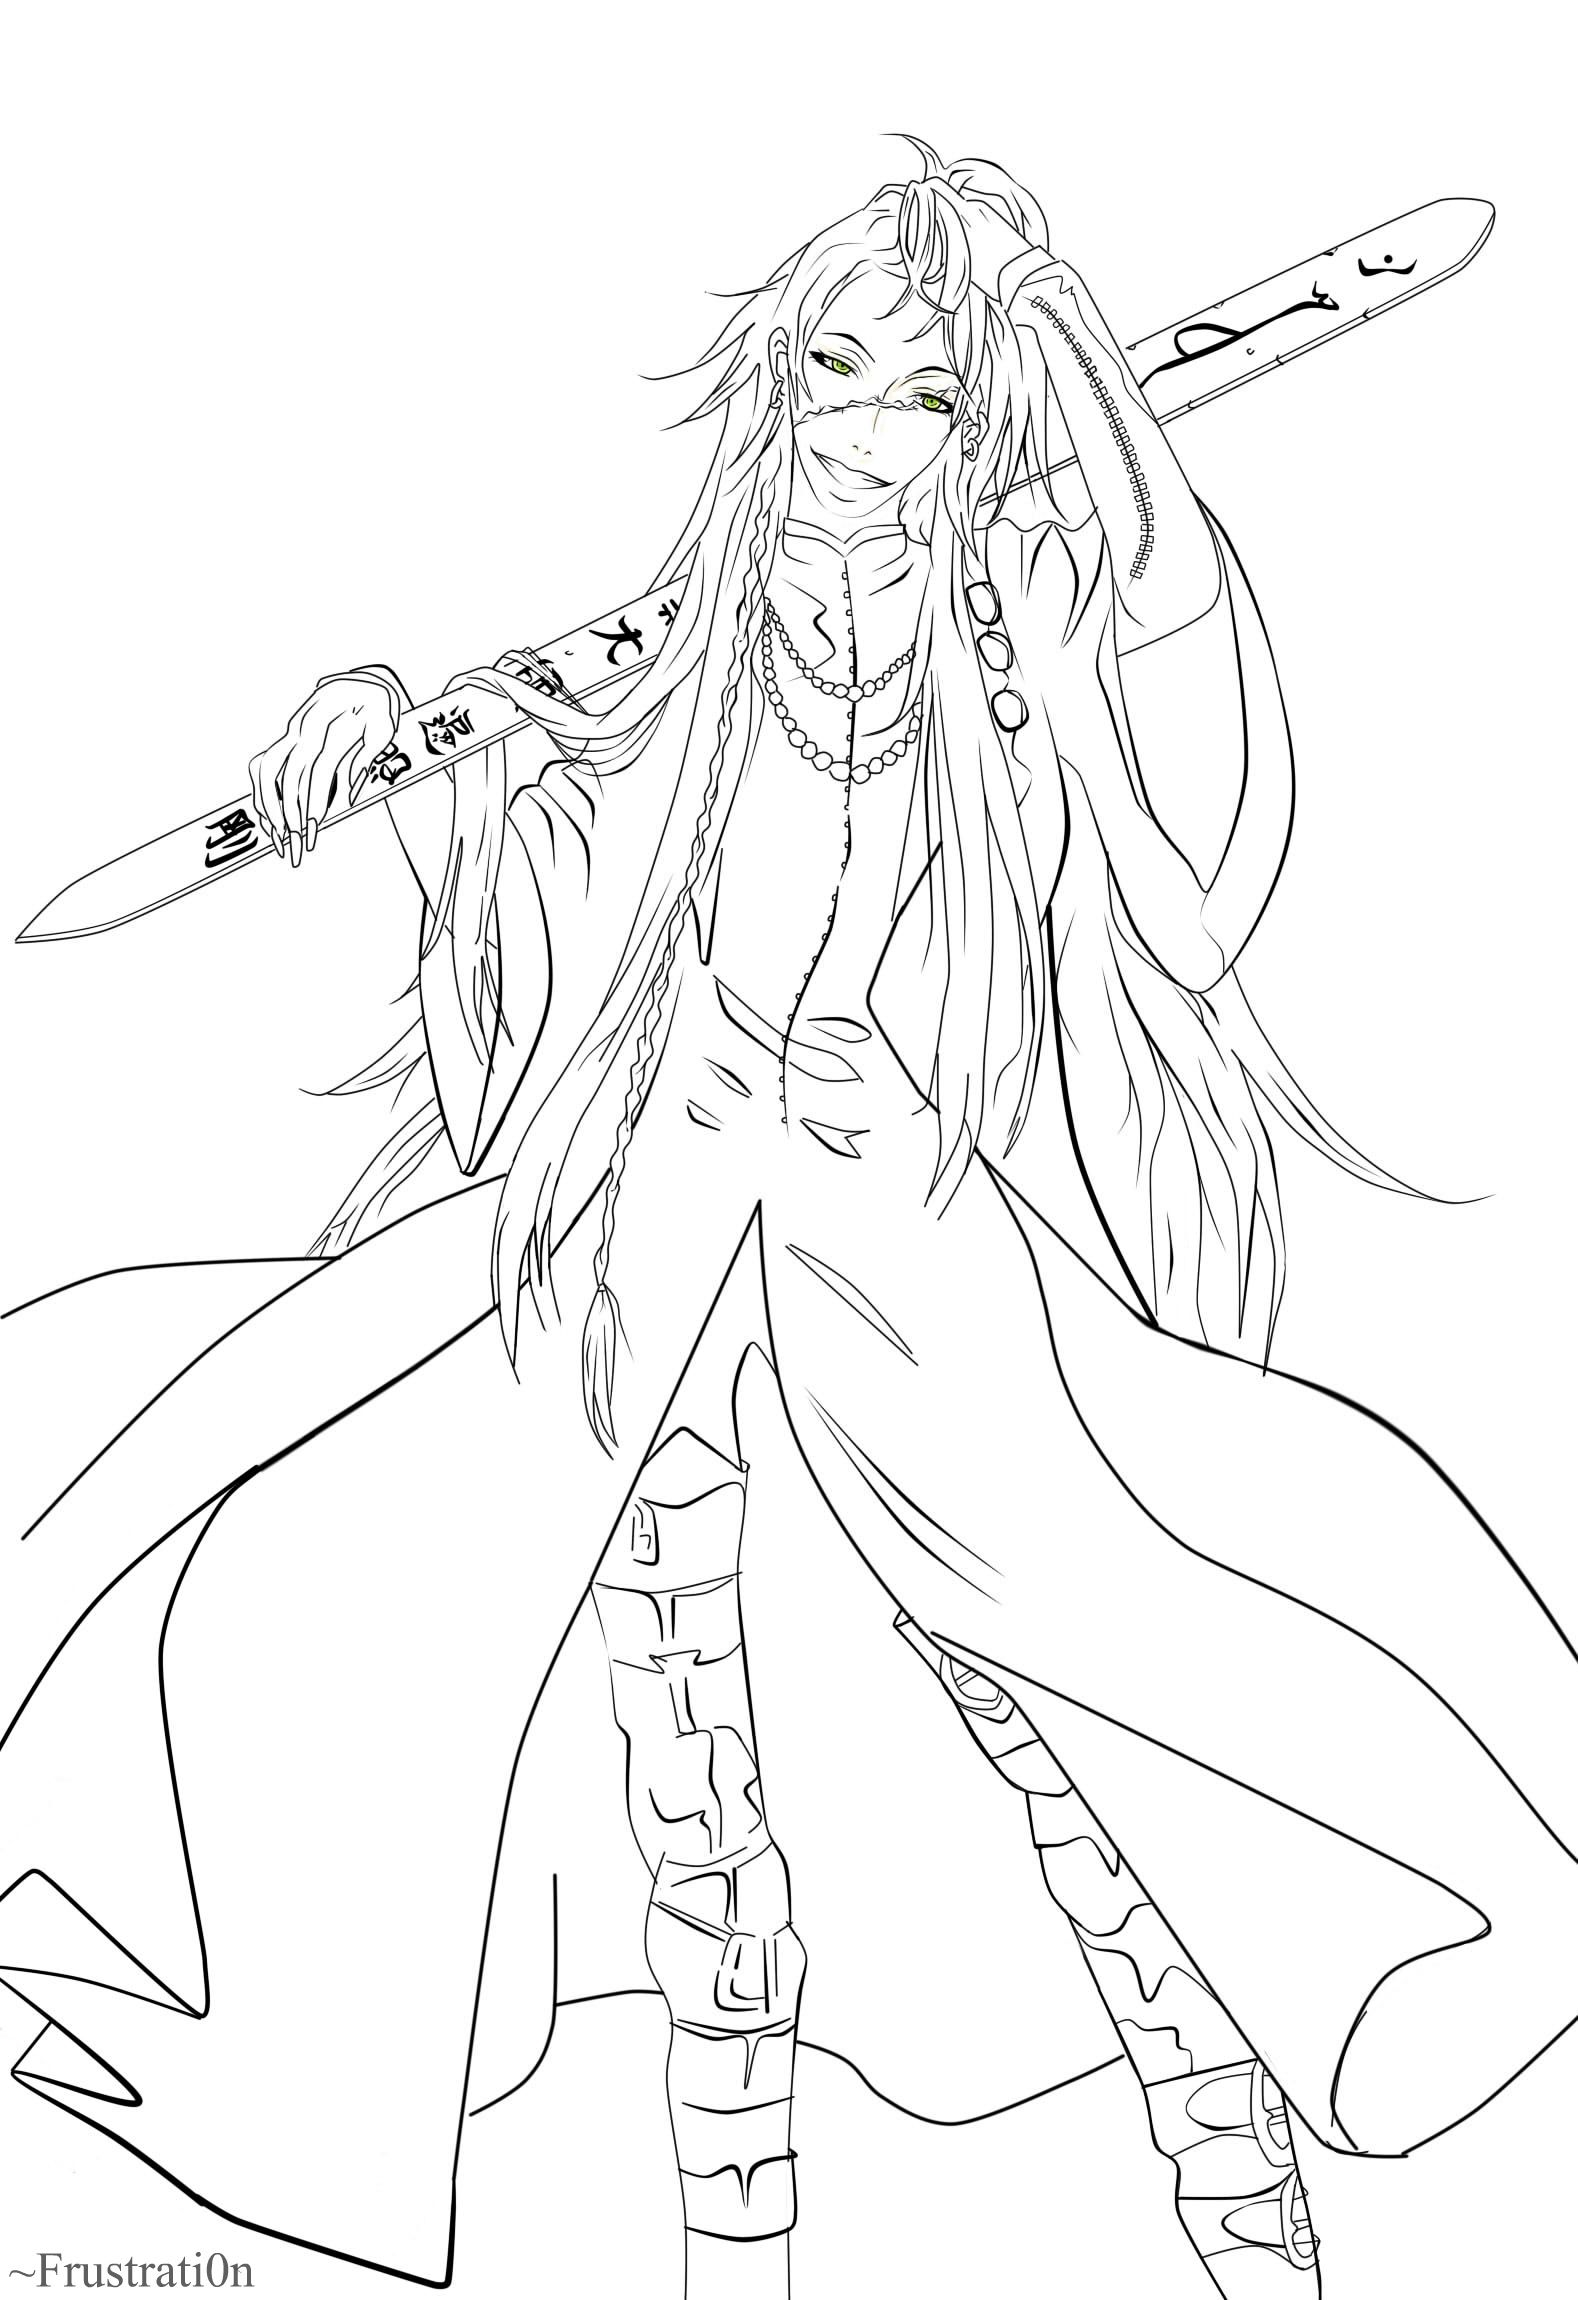 Comfortable Black Butler Coloring Pages 13634 1895x800